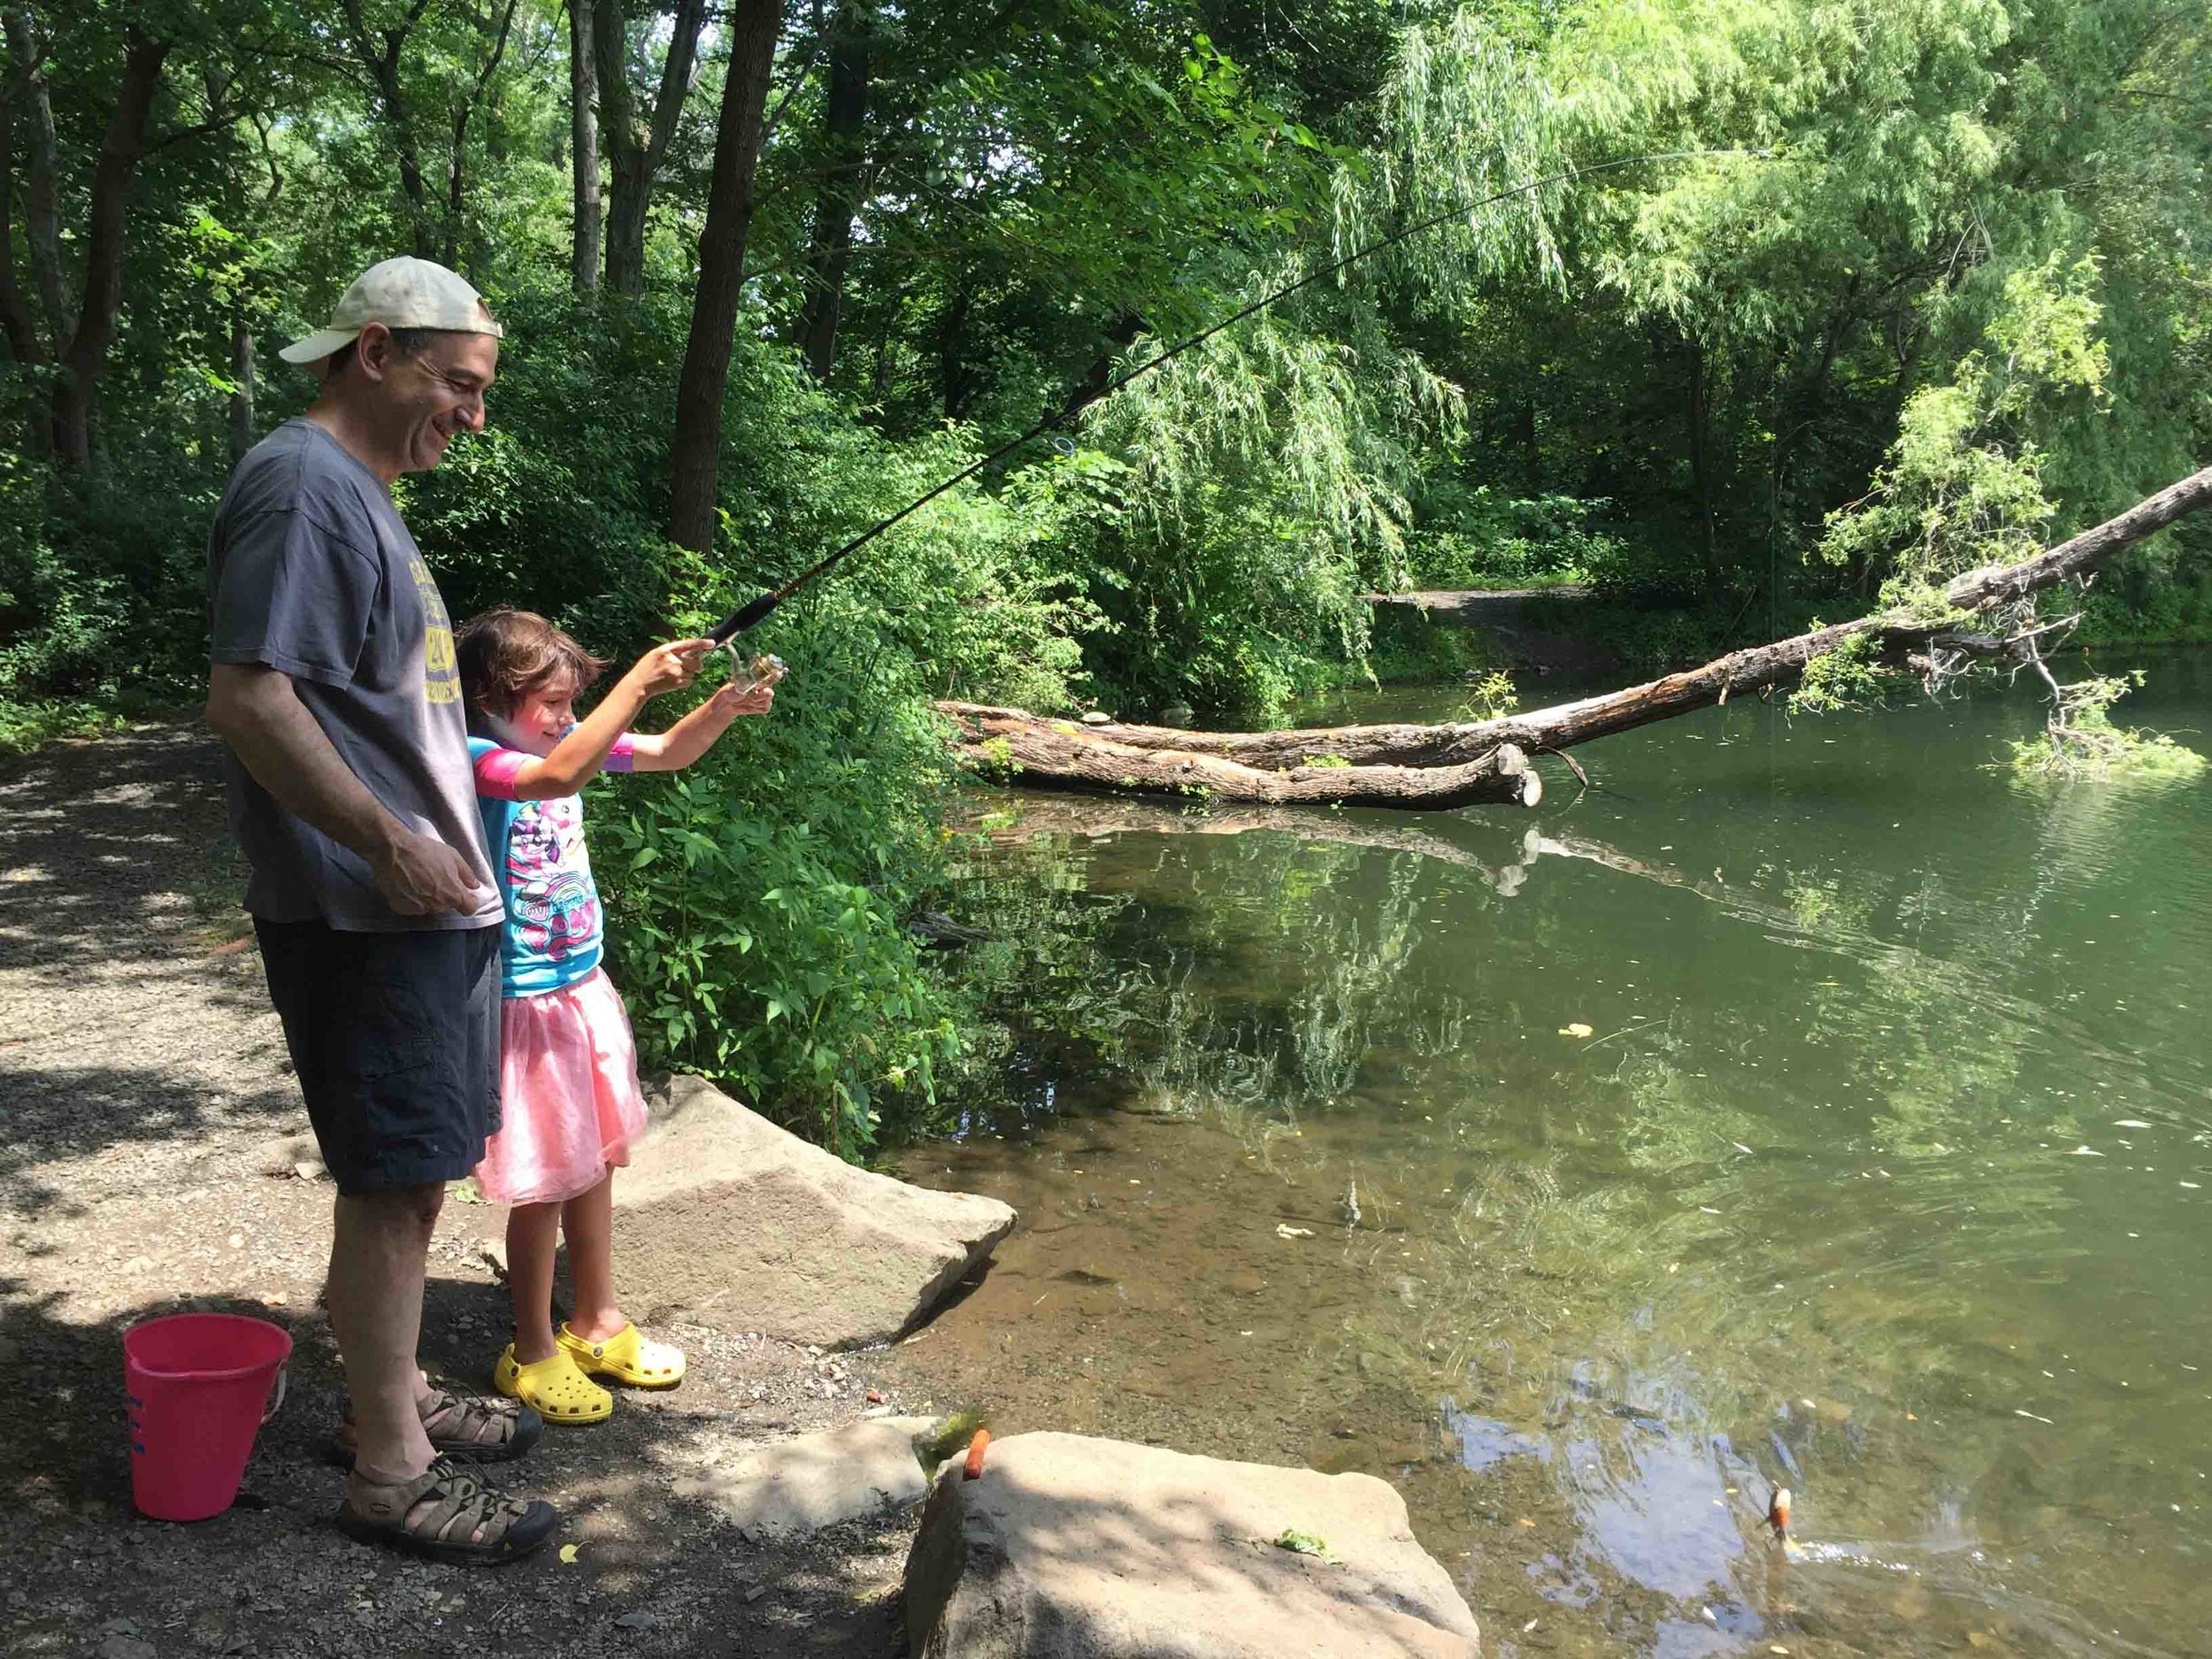 Last summer my husband taught my daughter to fish at the arboretum's spring fed pond which is stocked annually with fish.